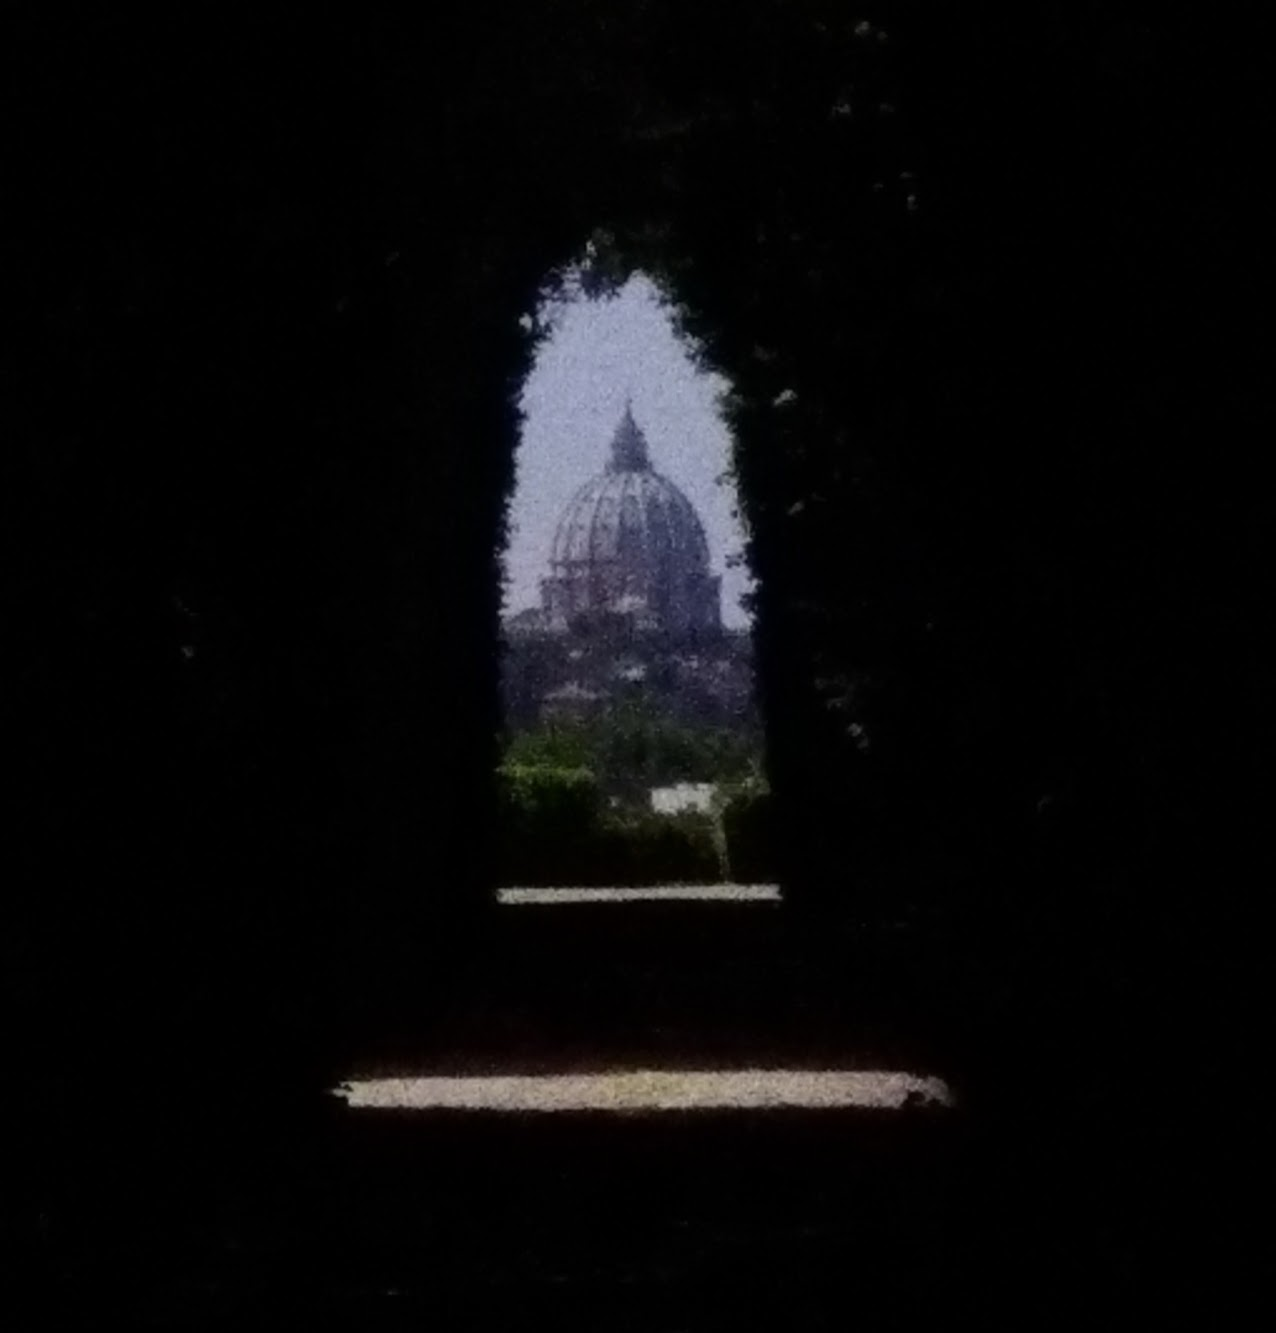 Keyhole view of St. Peter's Basilica